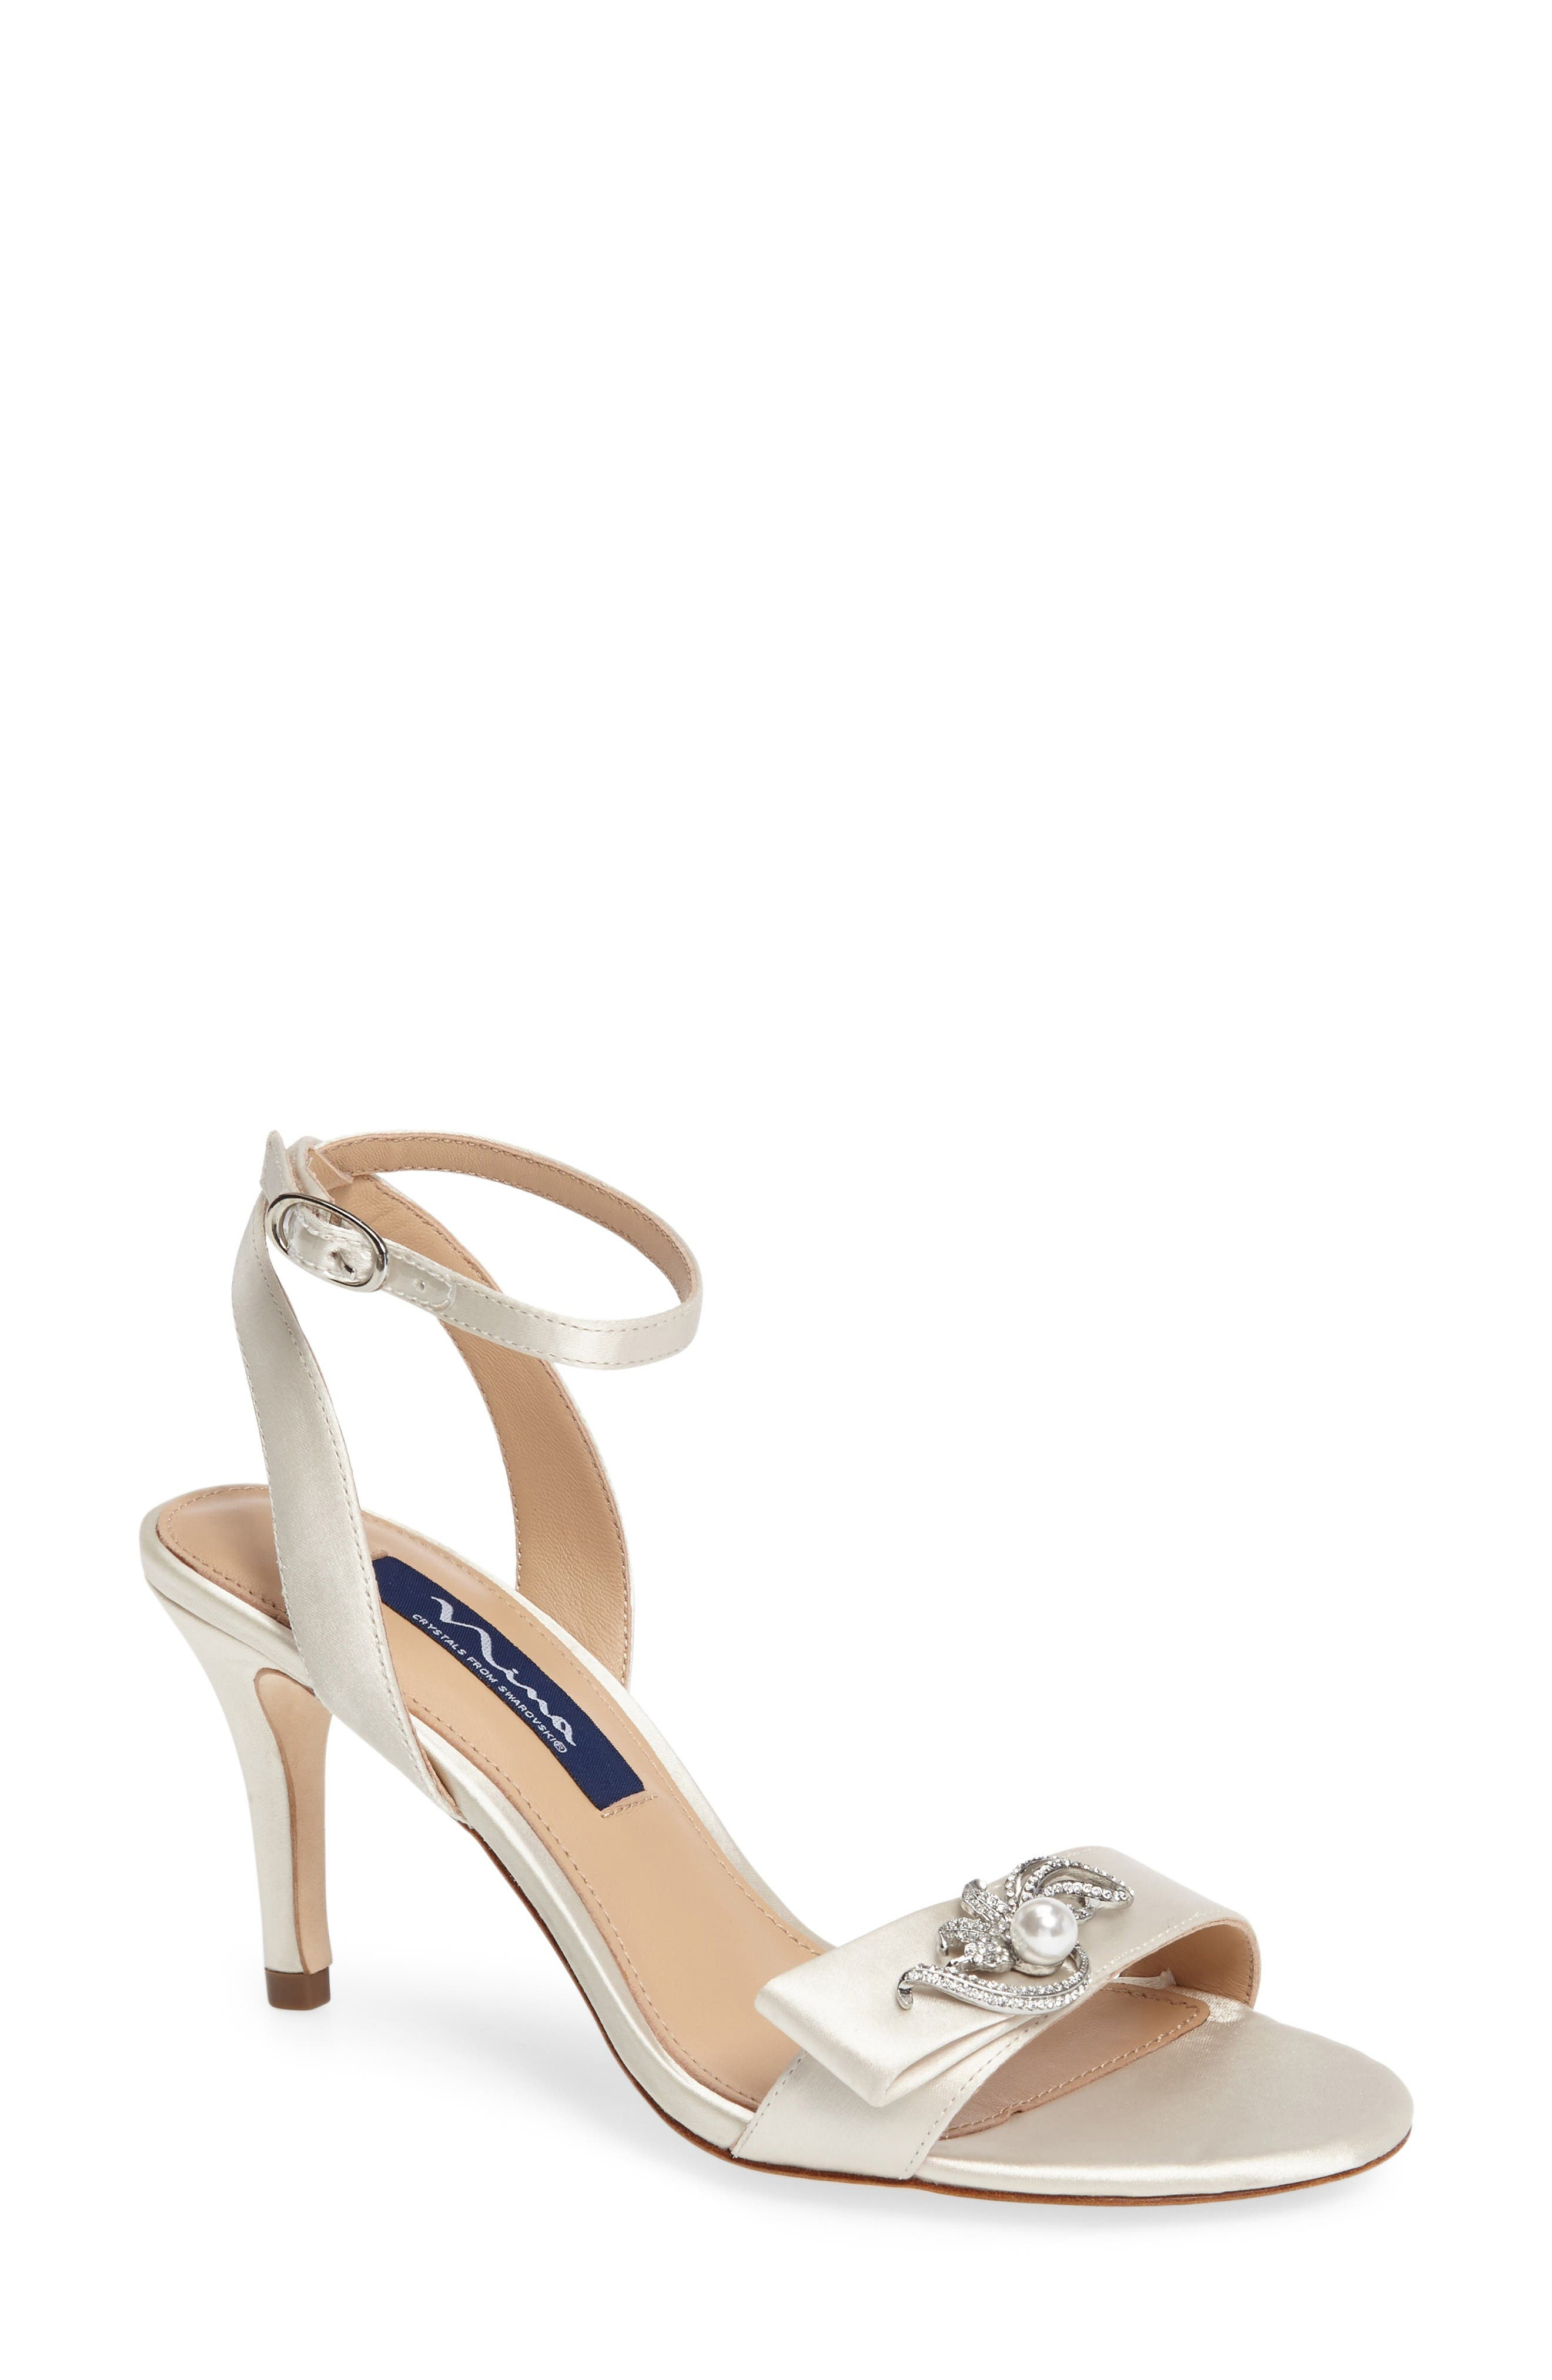 Alternate Image 1 Selected - Nina Kabira Swarovski Embellished Strappy Sandal (Women)